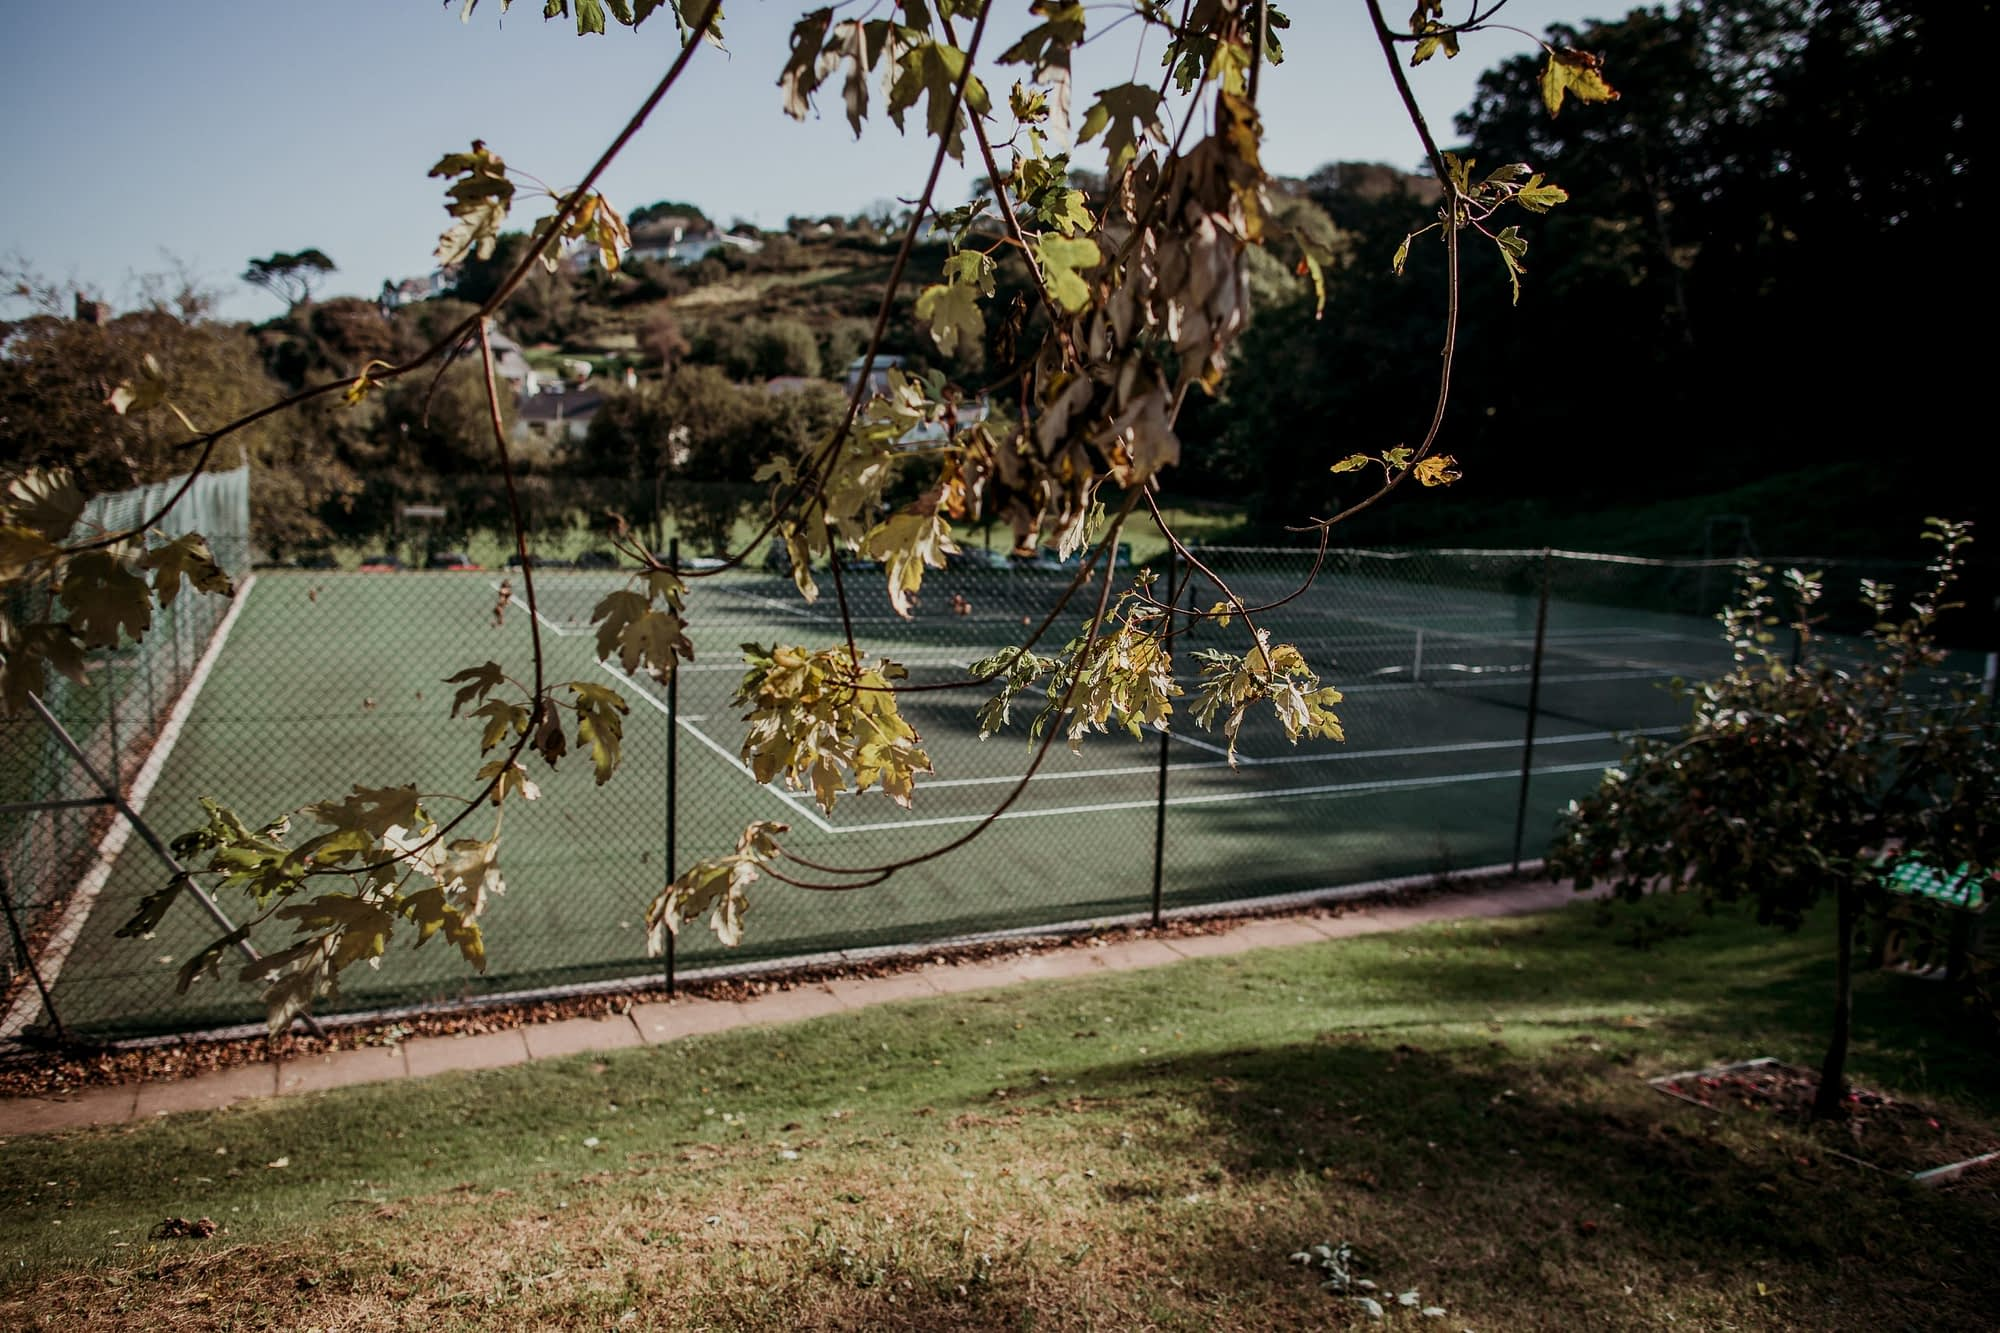 Noss Mayo Tennis Courts - Holiday Cottages Noss Mayo